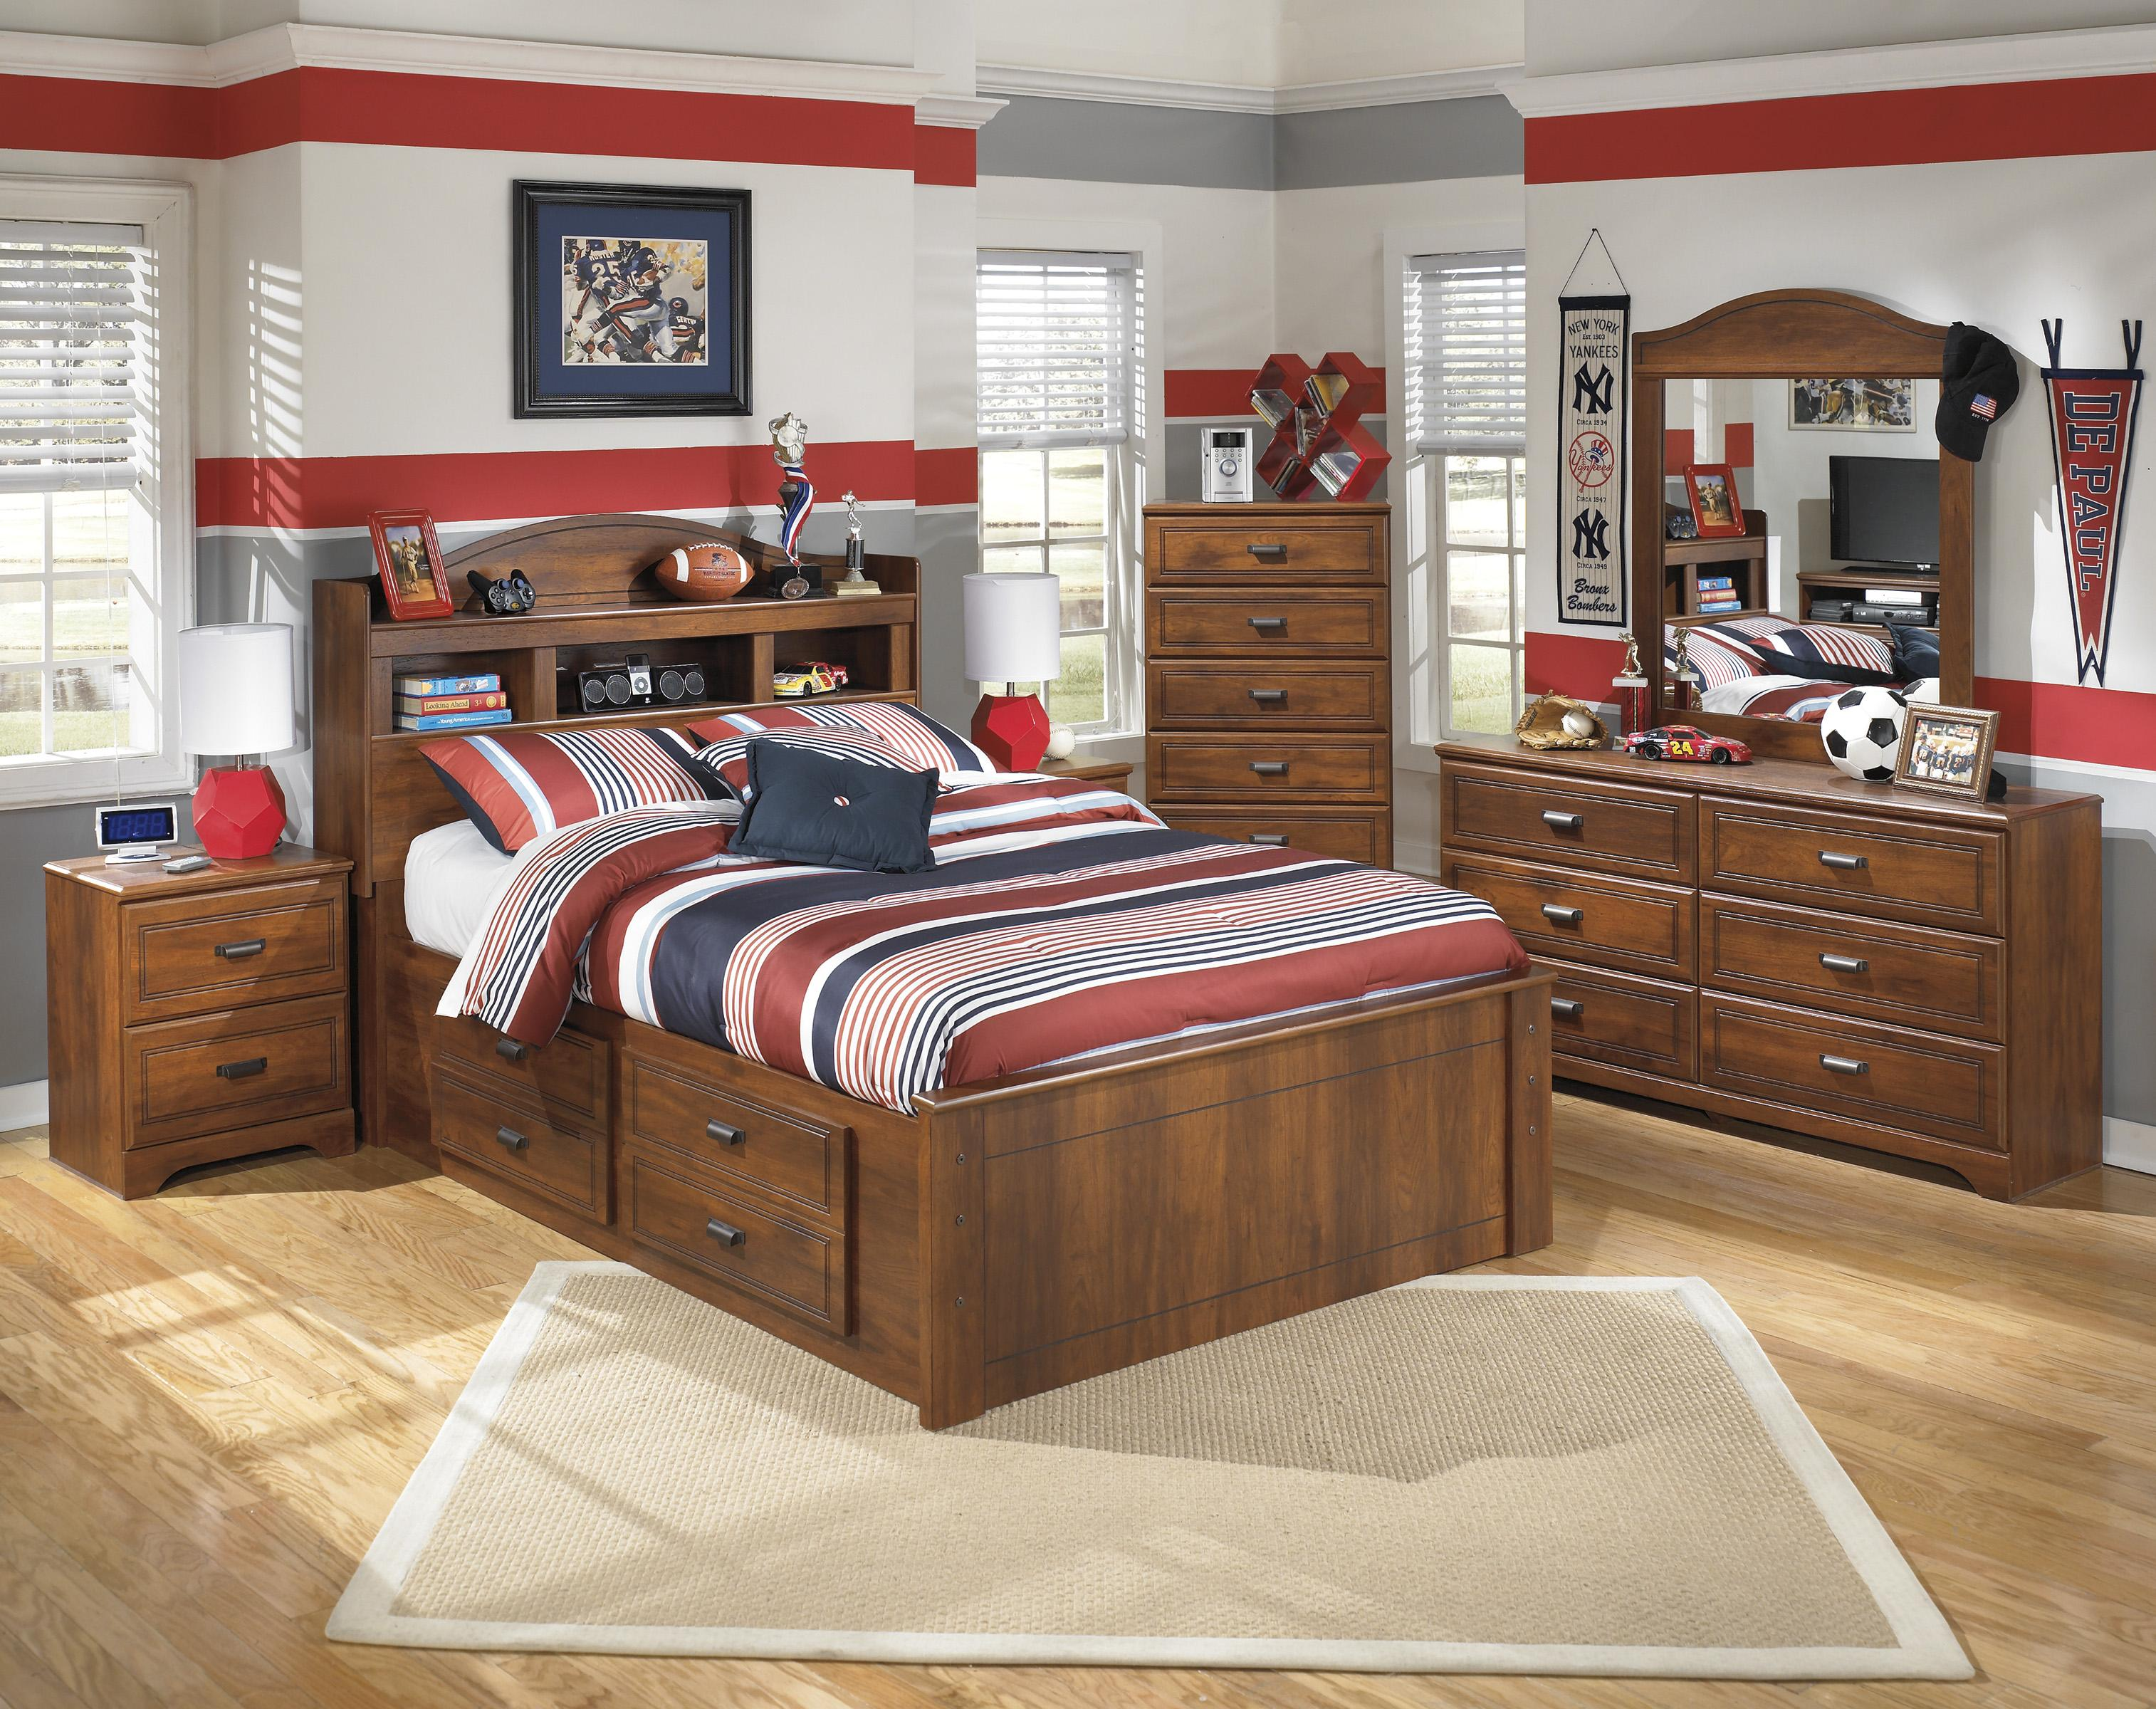 Barchan Full Bedroom Group by Signature Design by Ashley at Zak's Warehouse Clearance Center